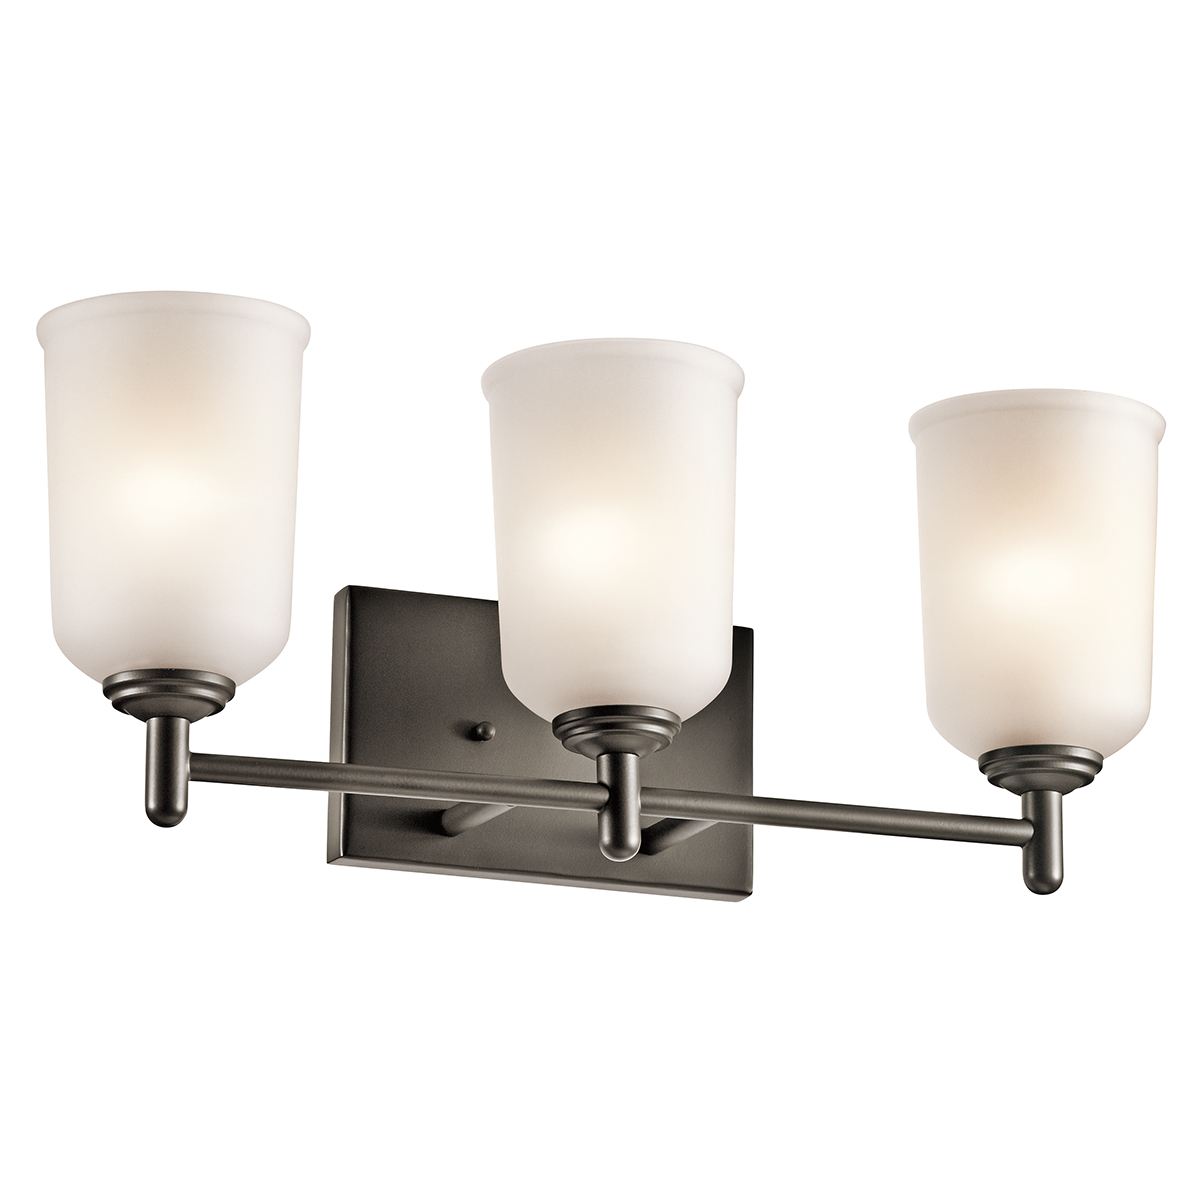 Kichler Lighting Pendant Ceiling Landscape Light Fixtures Html Autos Weblog